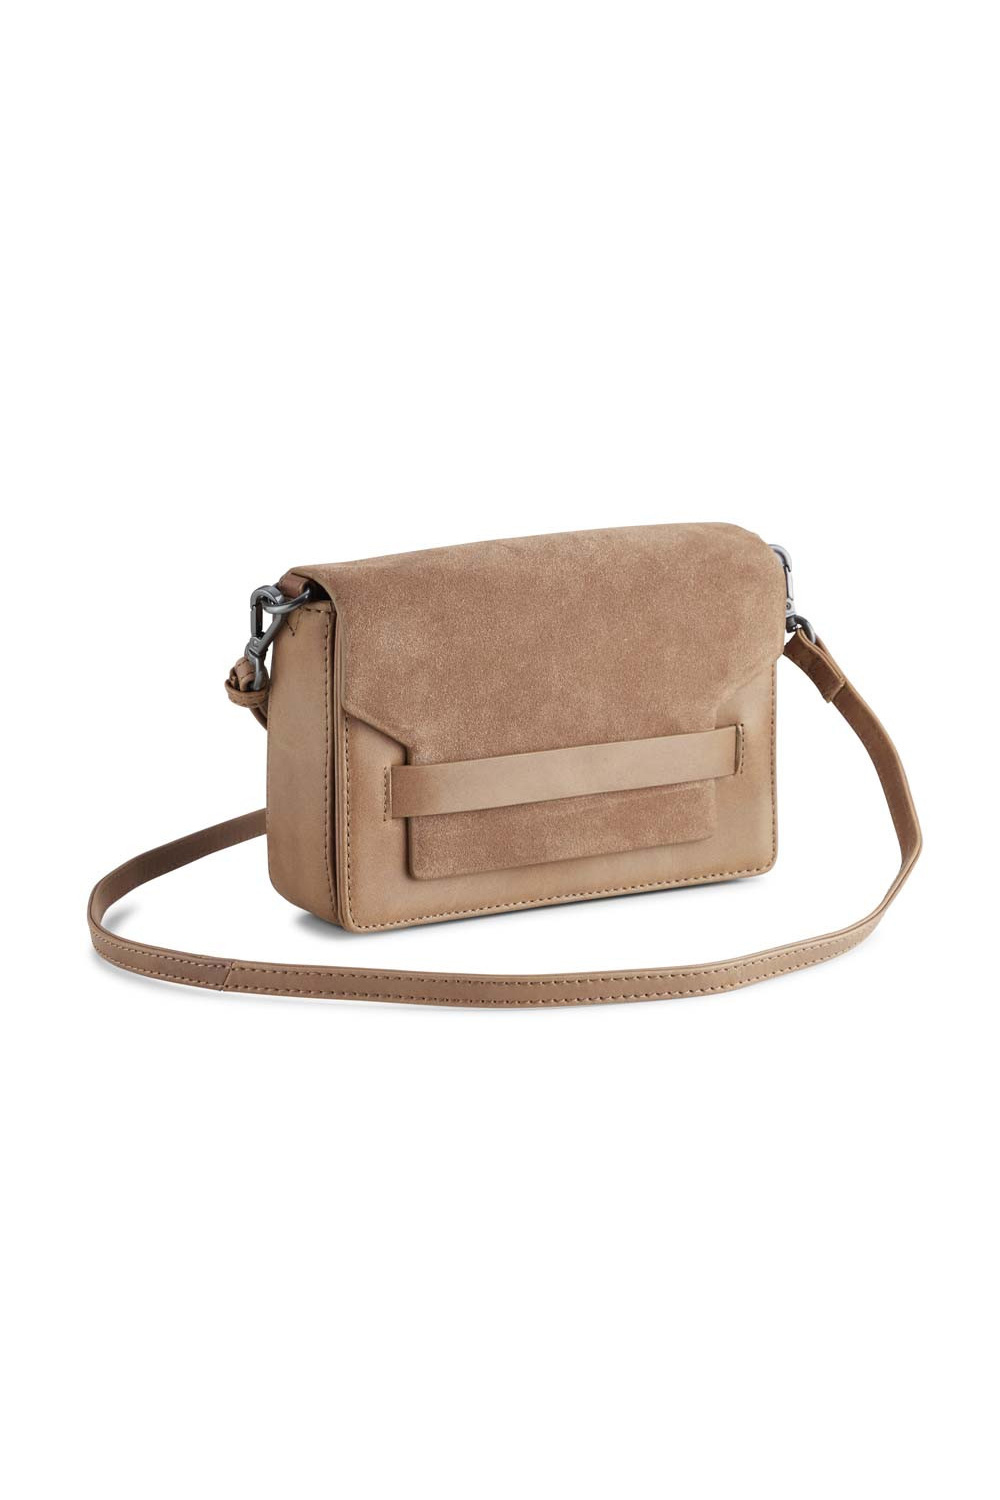 Vanya Crossbody Bag Antique Mix - Caramel-2